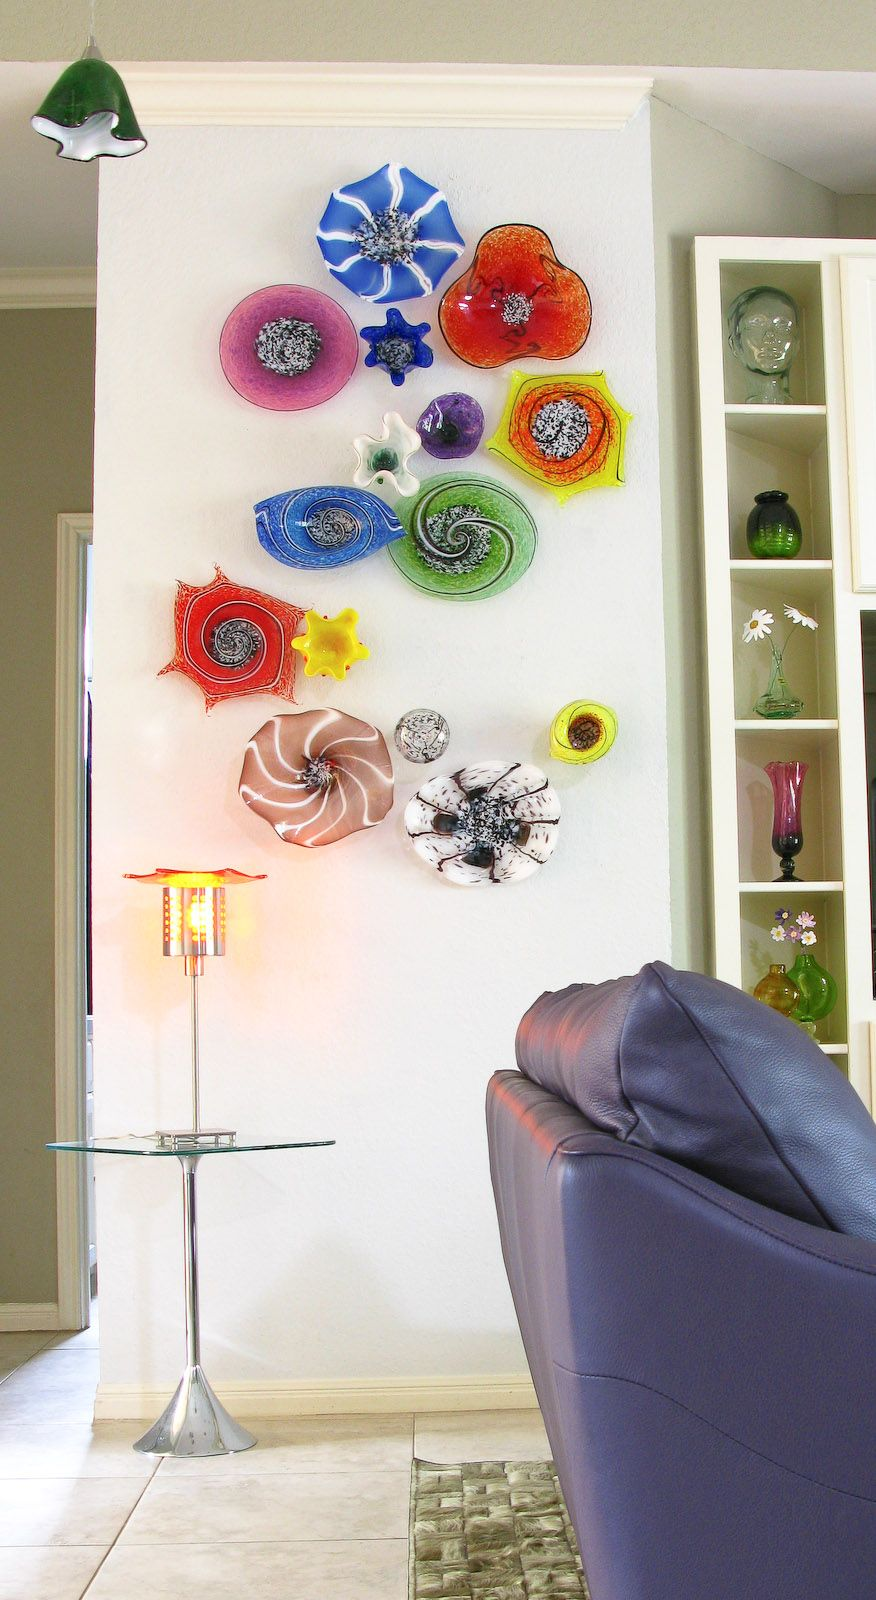 Our Blown Glass Flower Wall Art Designs Are Available In A Rainbow Of Colors To Complement Your Homes Decor